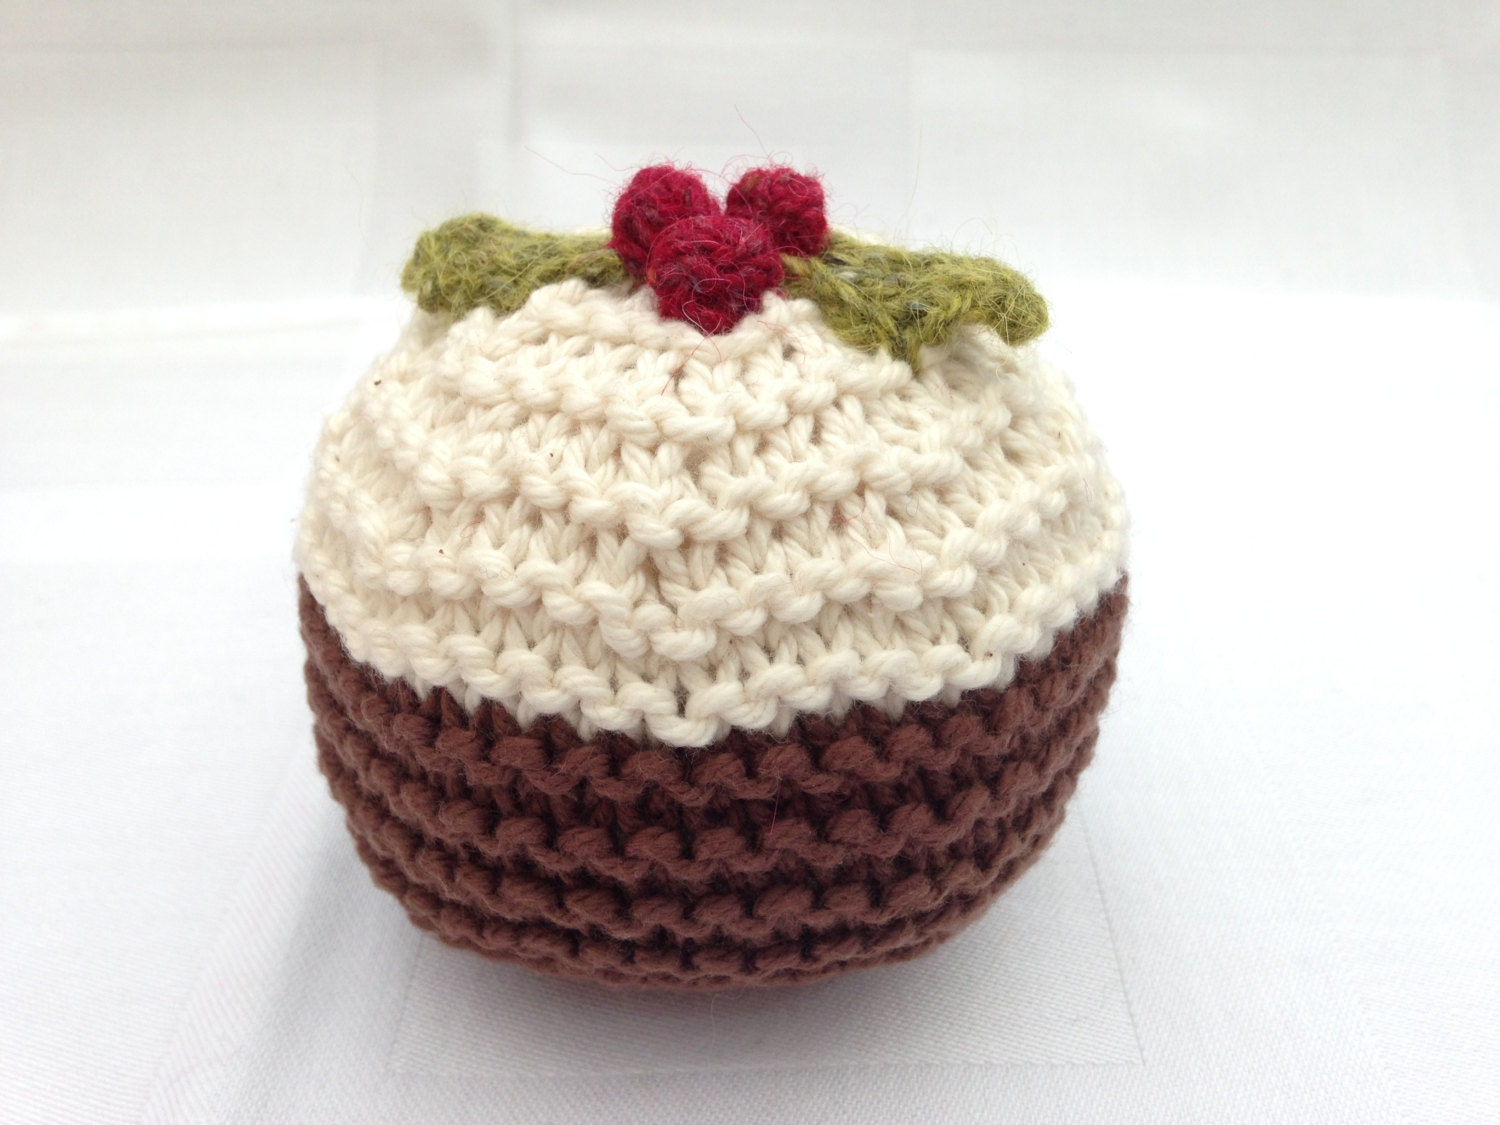 Knitted Christmas Pudding Pattern Free : Christmas Pudding knitting pattern by LouiseNewtonDesigns on Etsy